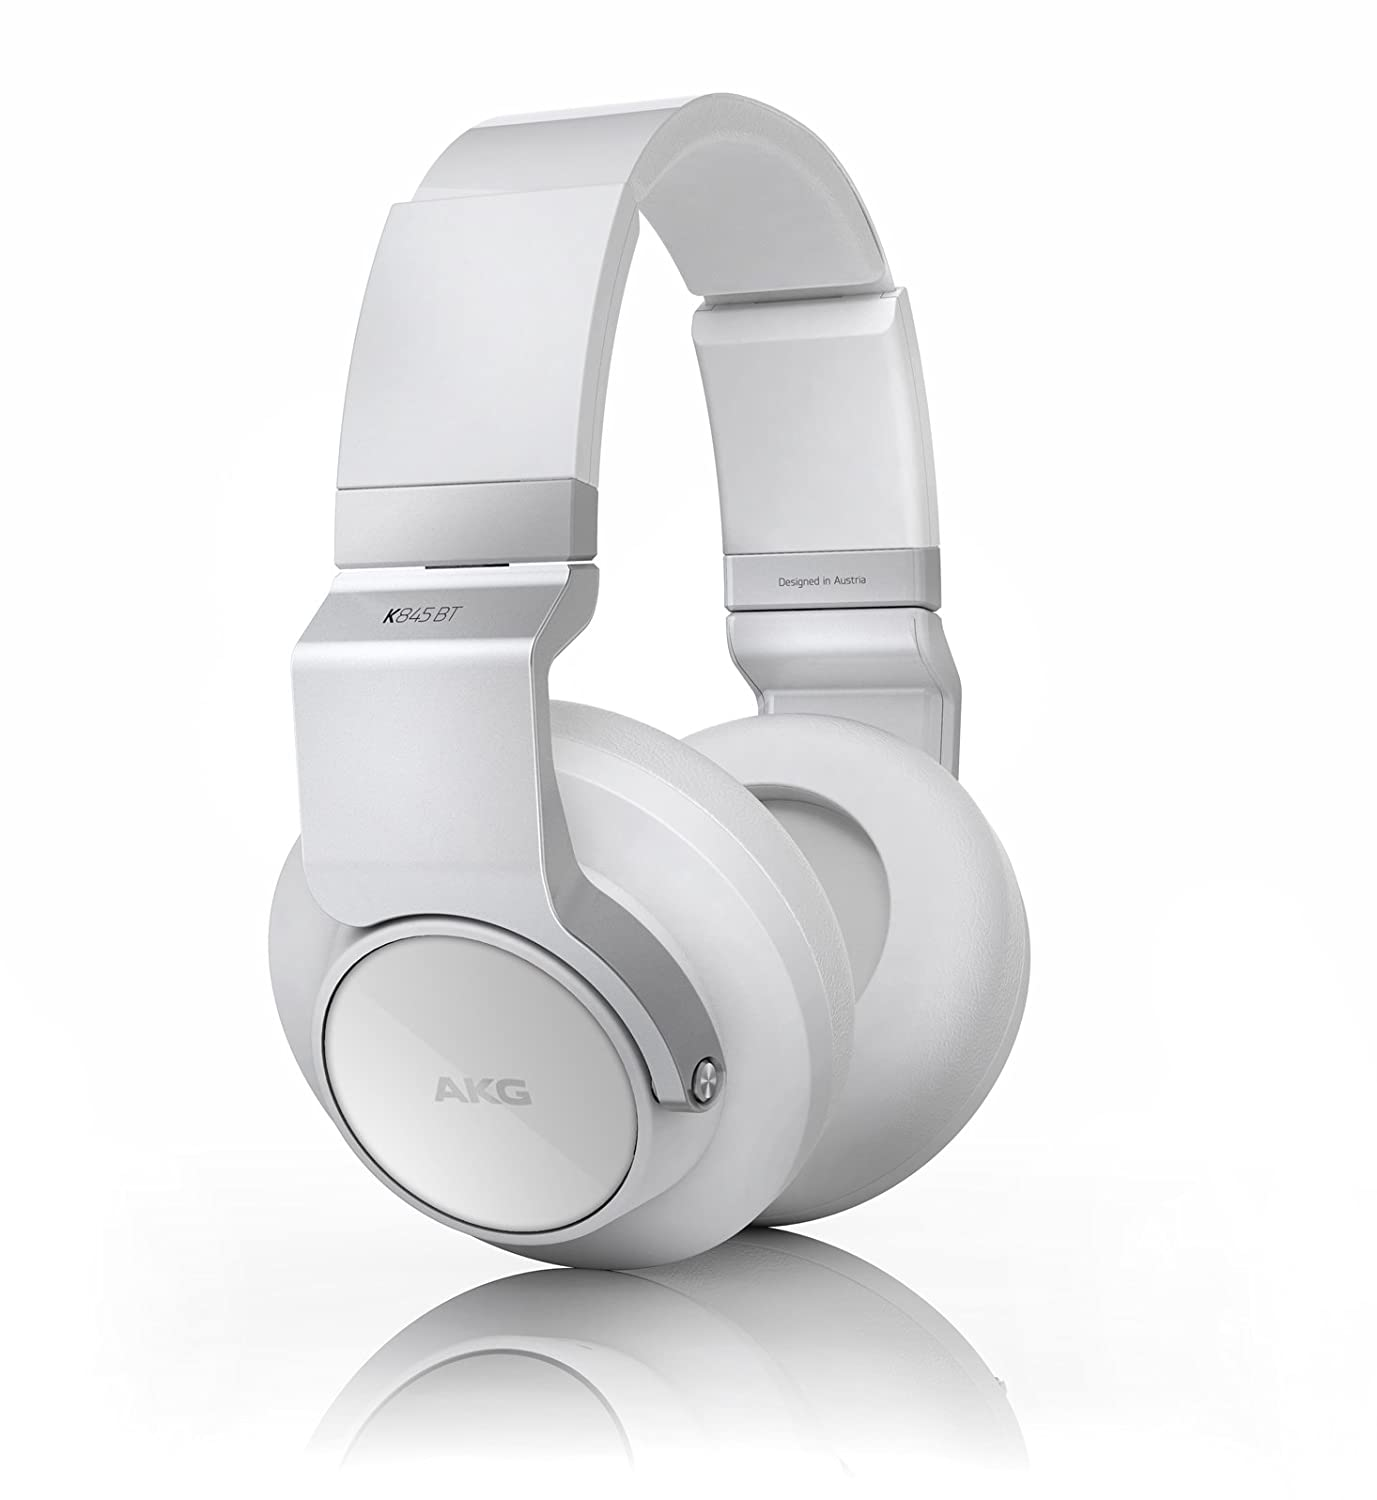 akg headphones white. amazon.com: akg k 845bt bluetooth wireless on-ear headphones, white: home audio \u0026 theater akg headphones white